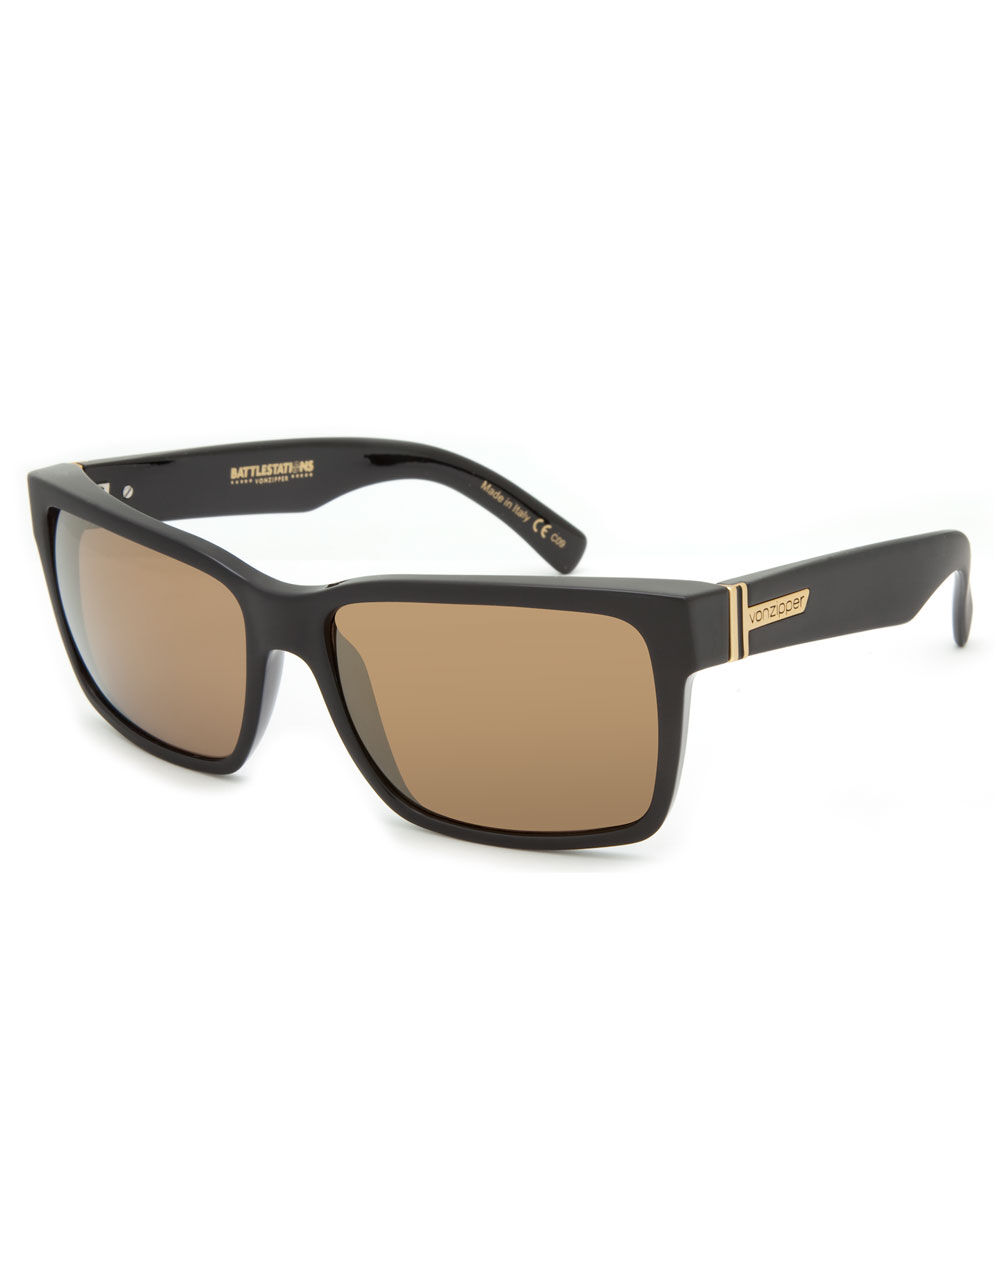 VON ZIPPER BATTLESTATIONS ELMORE SUNGLASSES